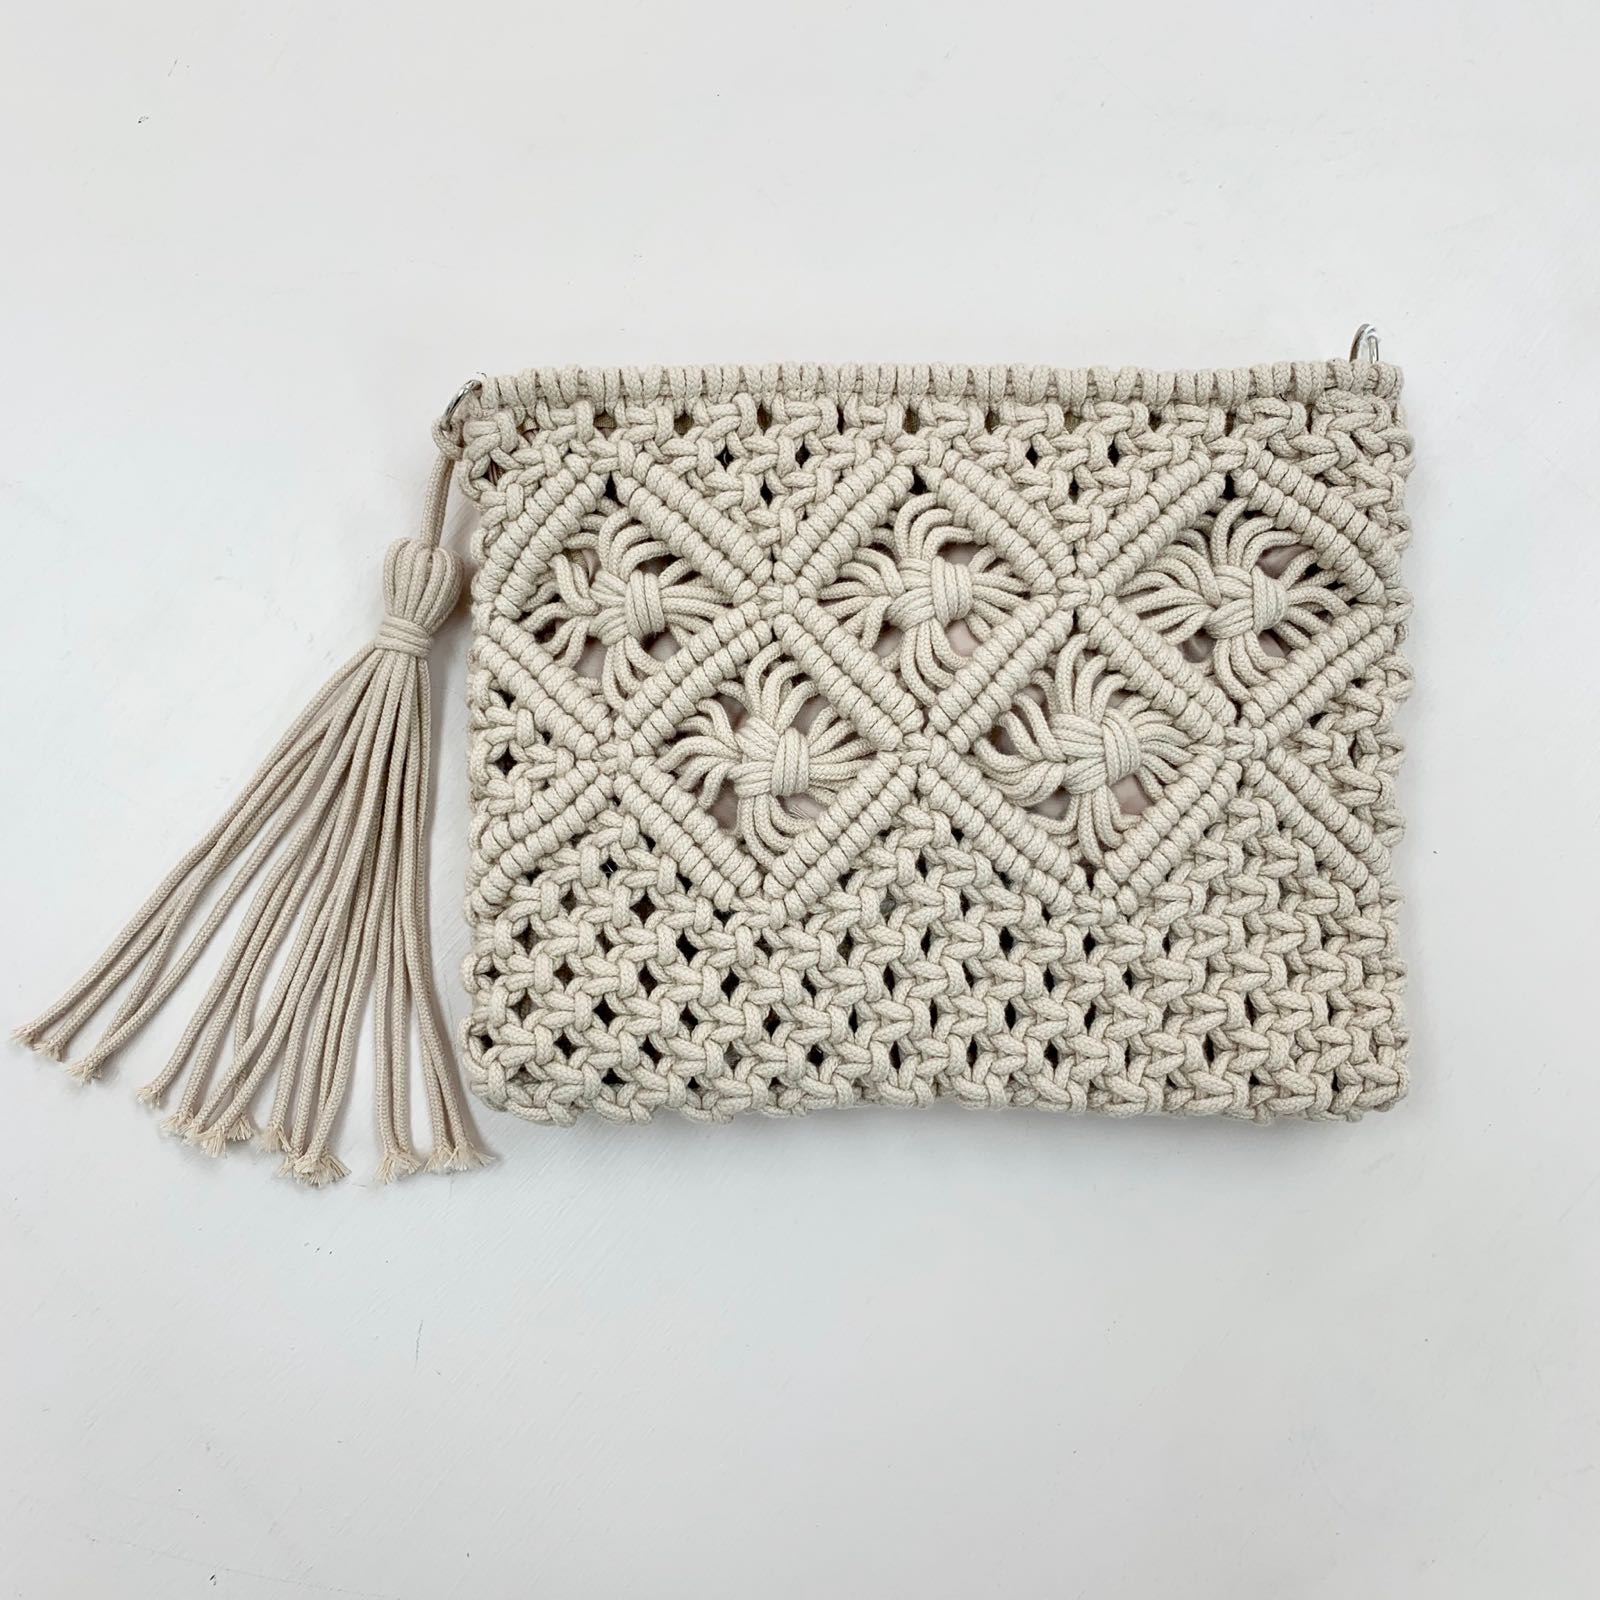 Braided Clutch with Removable Strap